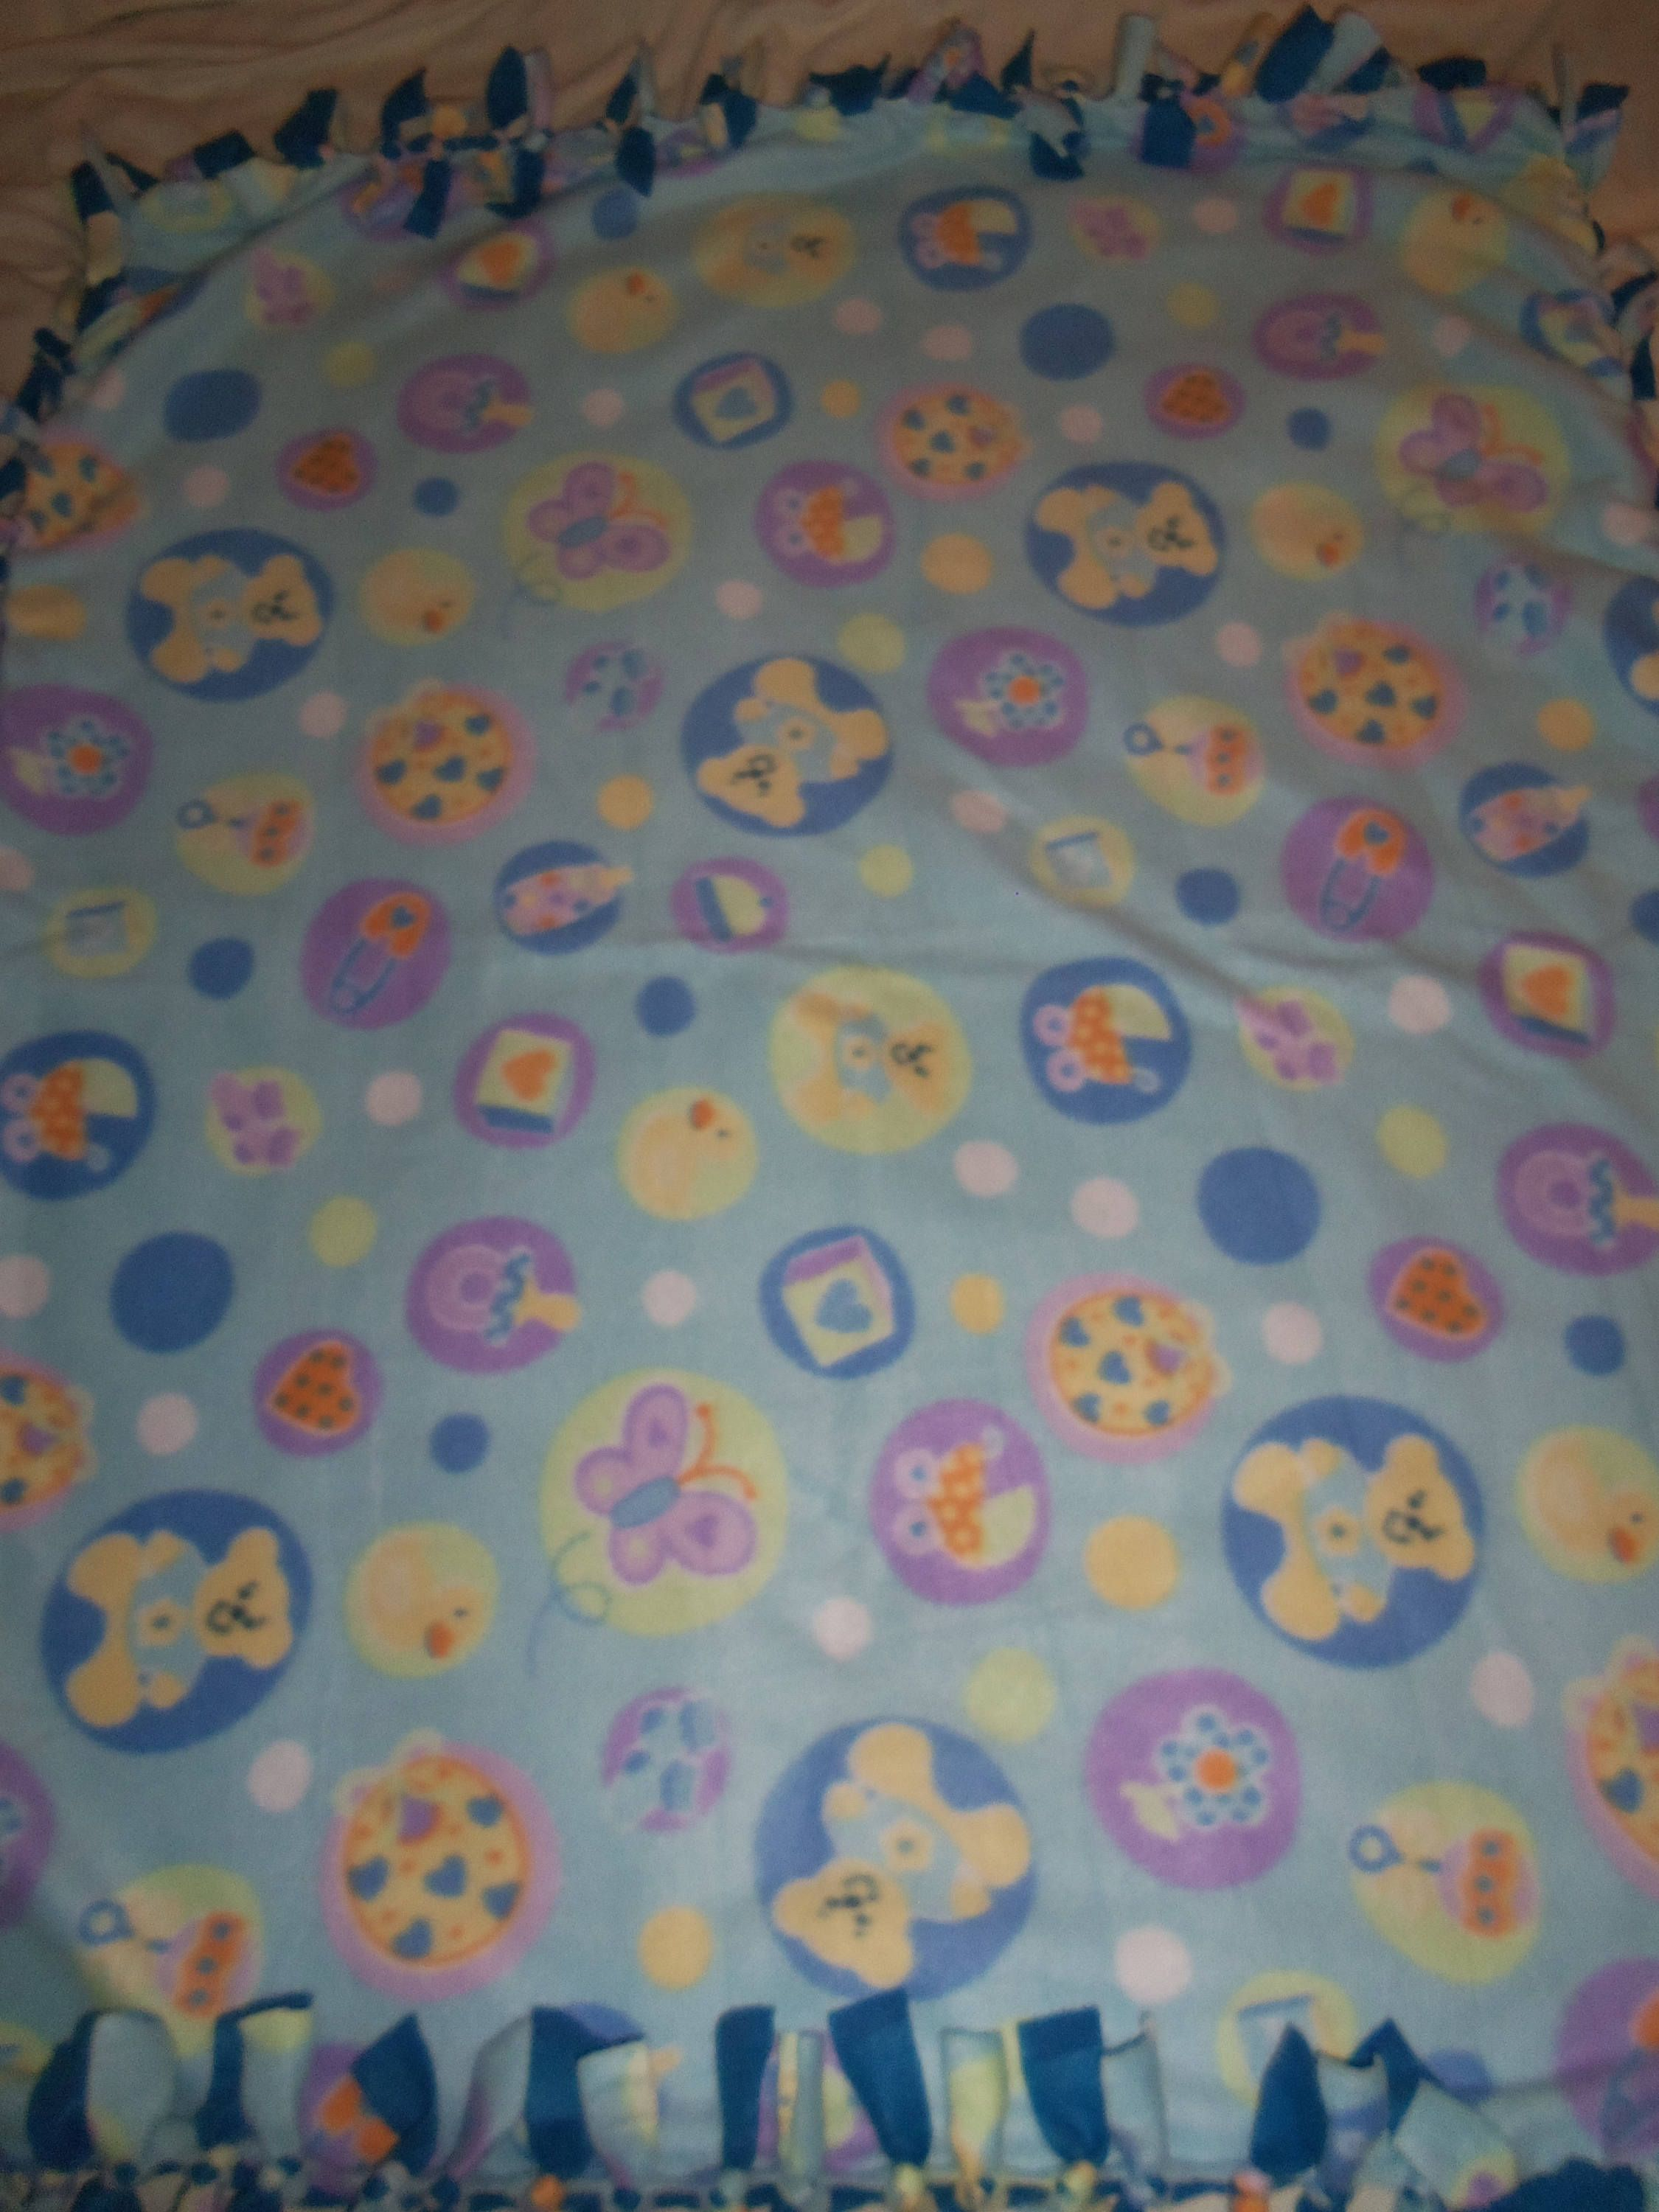 Brand New Whimsical Baby Boy Teddy Bear Pacifier Diaper Pin  Double Sided Hand Tied Fleece Rag Blanket Throw ~ Baby Gift